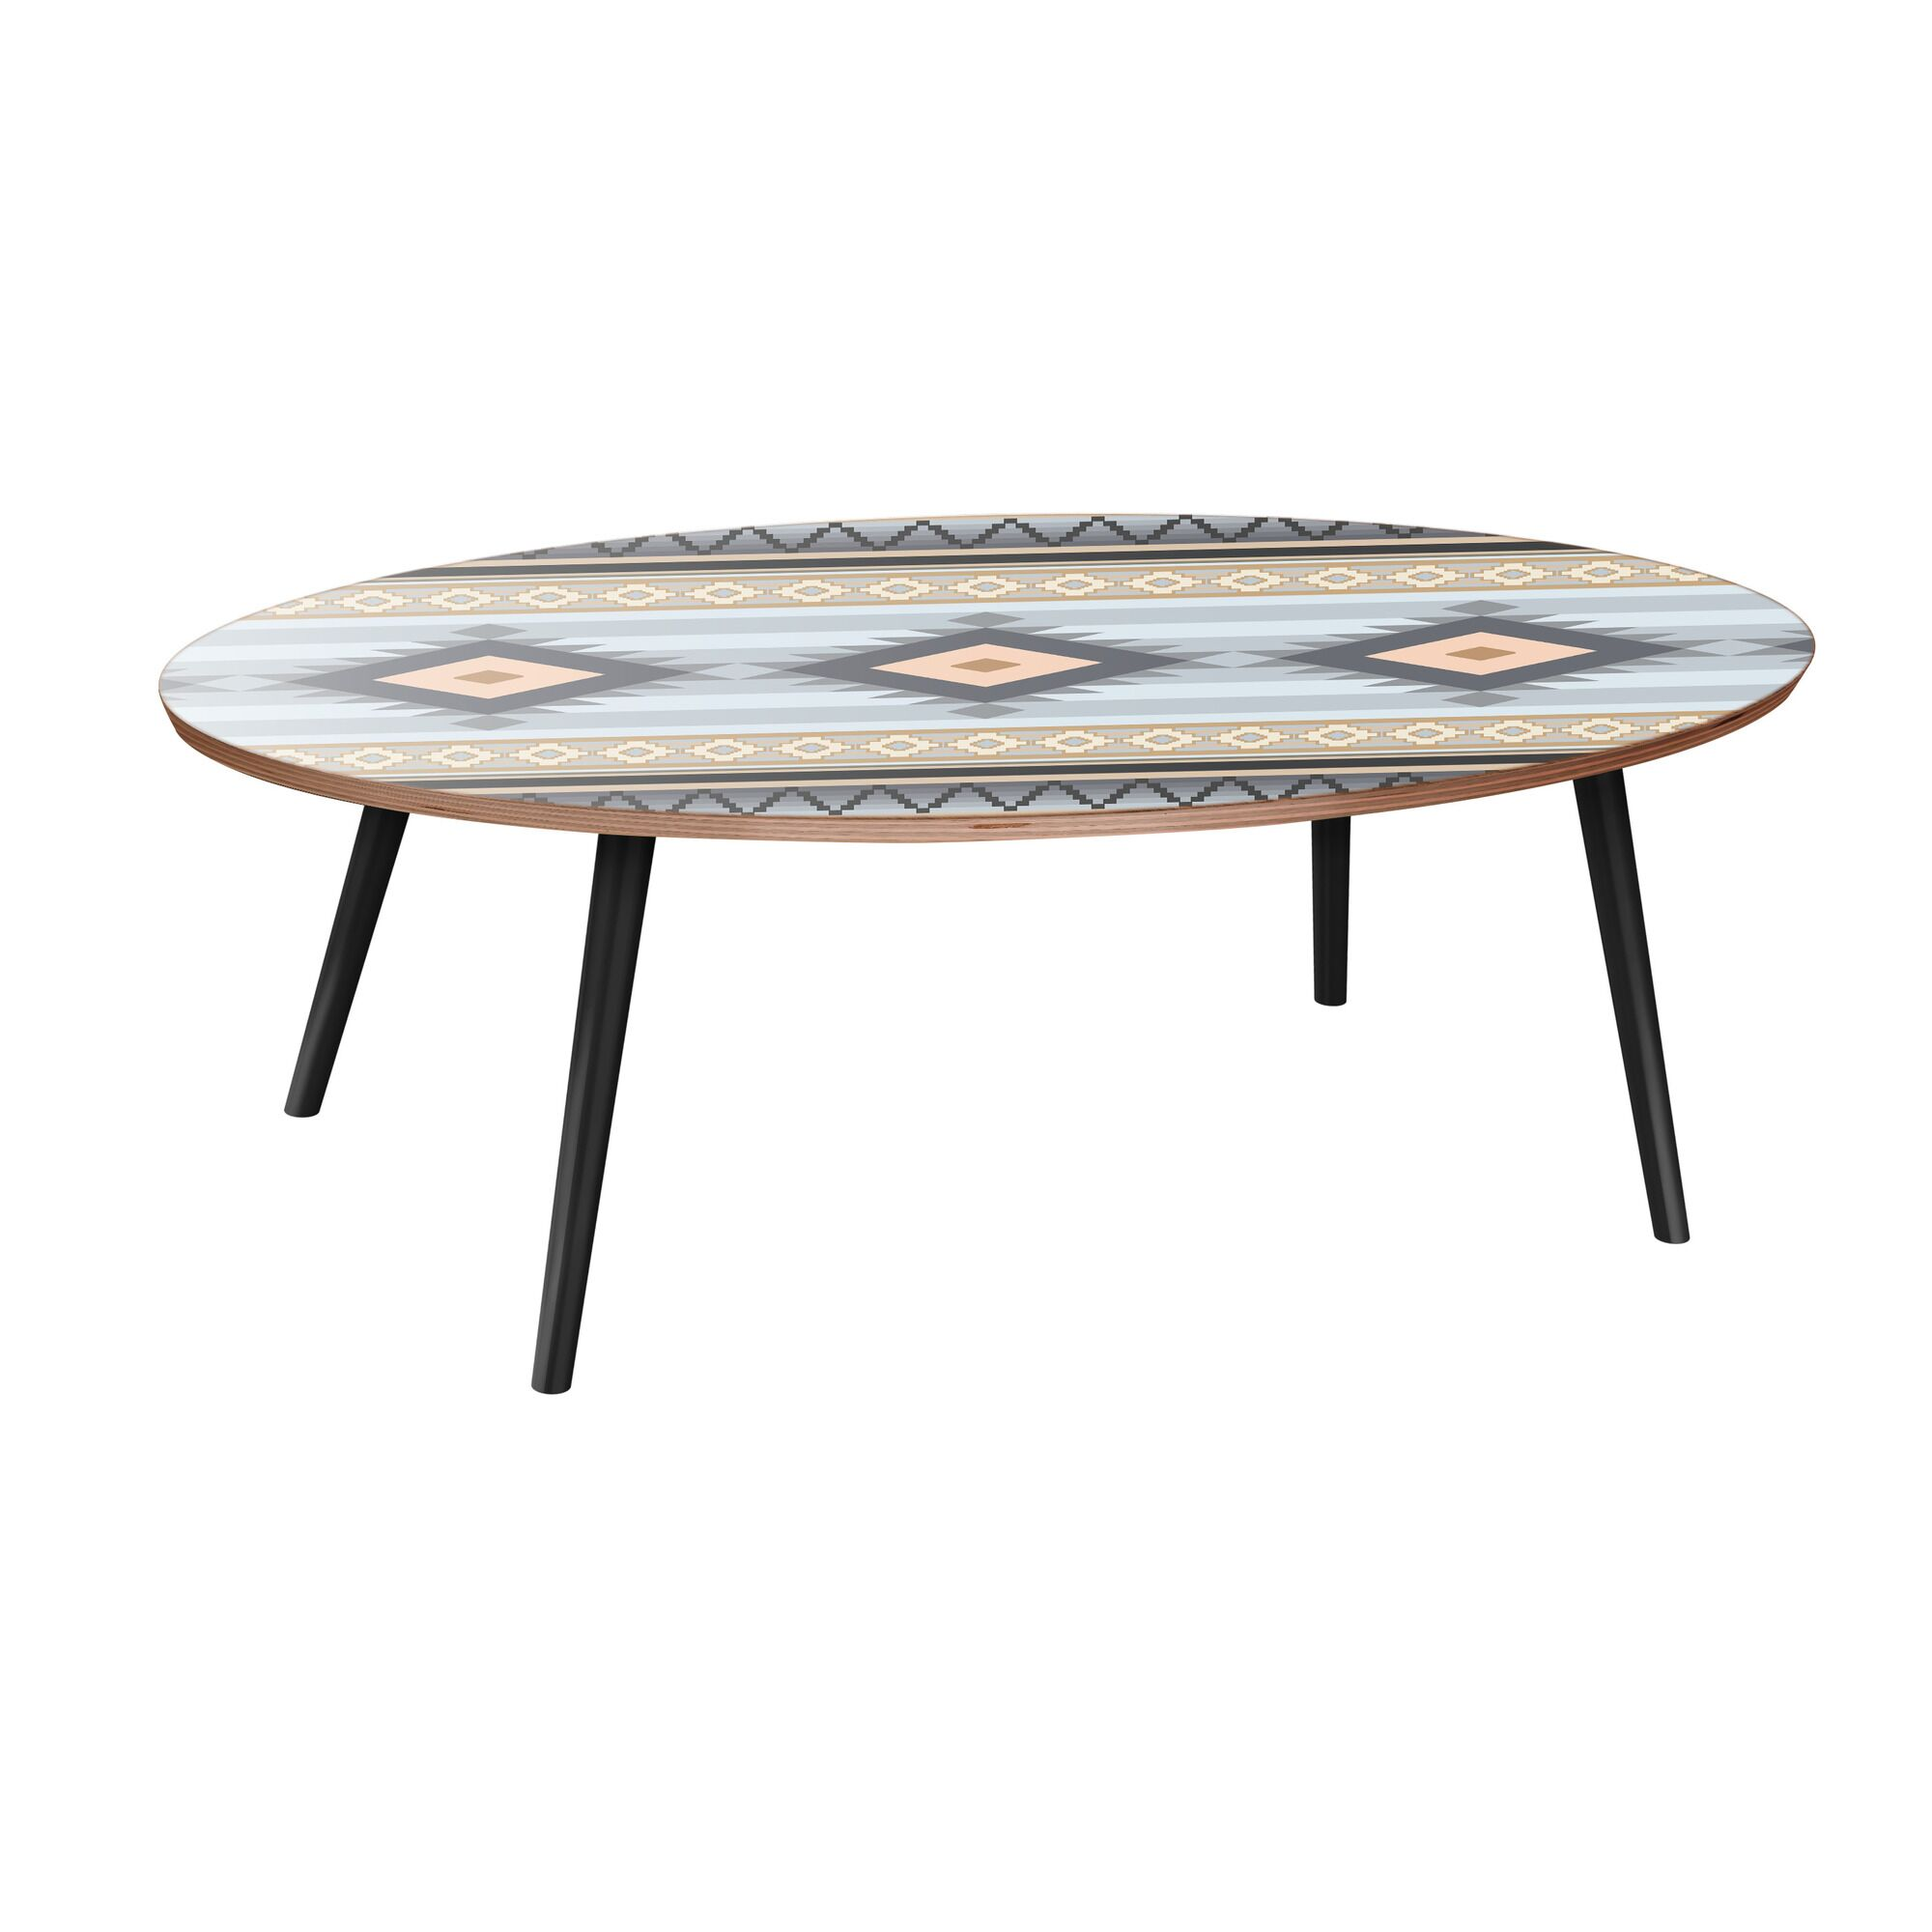 Hubbs Coffee Table Table Base Color: Black, Table Top Color: Walnut